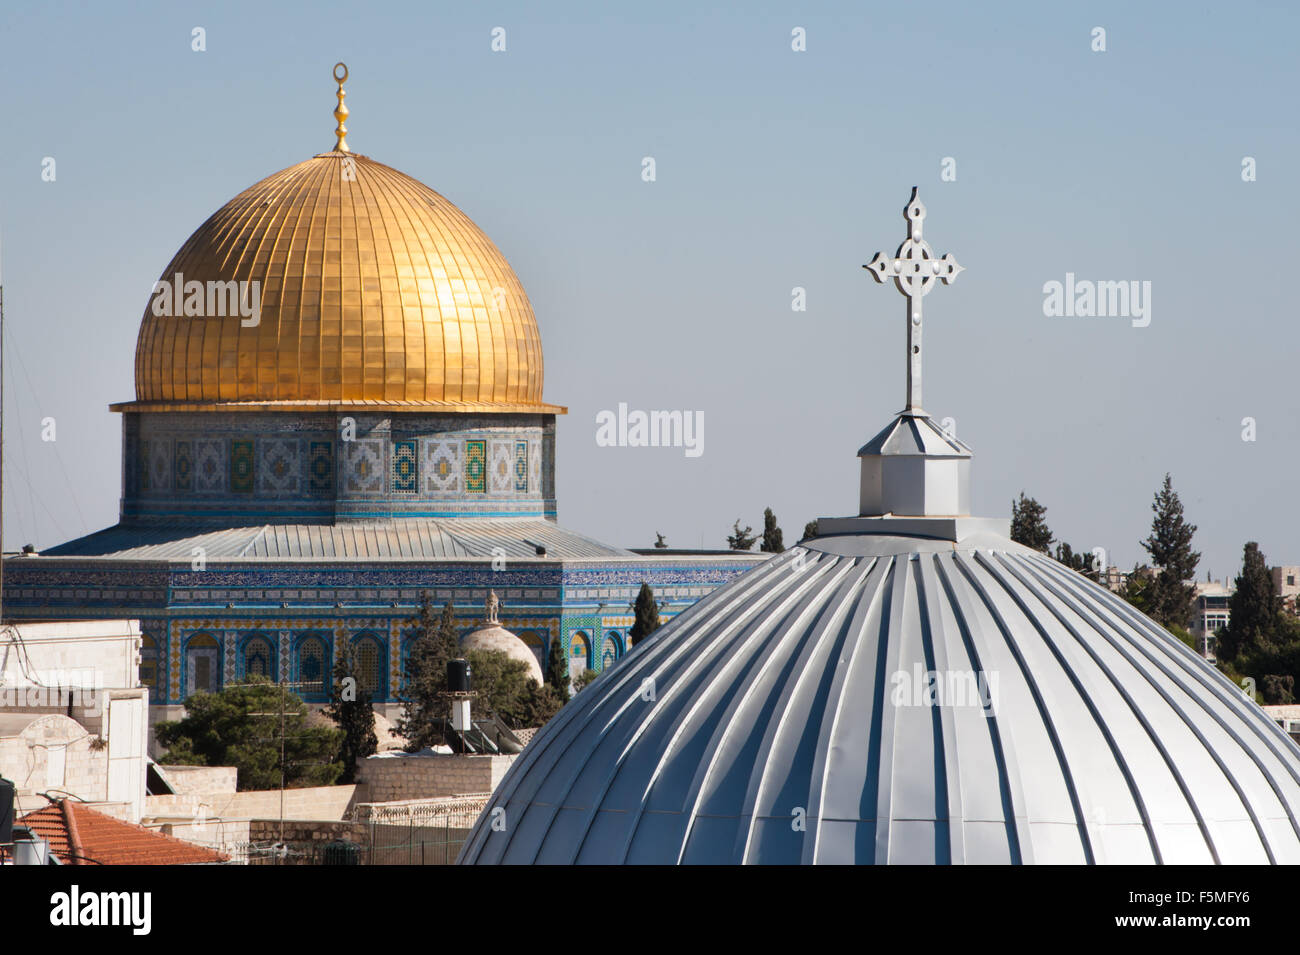 Our Lady of the Spasm Armenian Catholic Church and the Dome of the Rock in the Old City of Jerusalem. - Stock Image